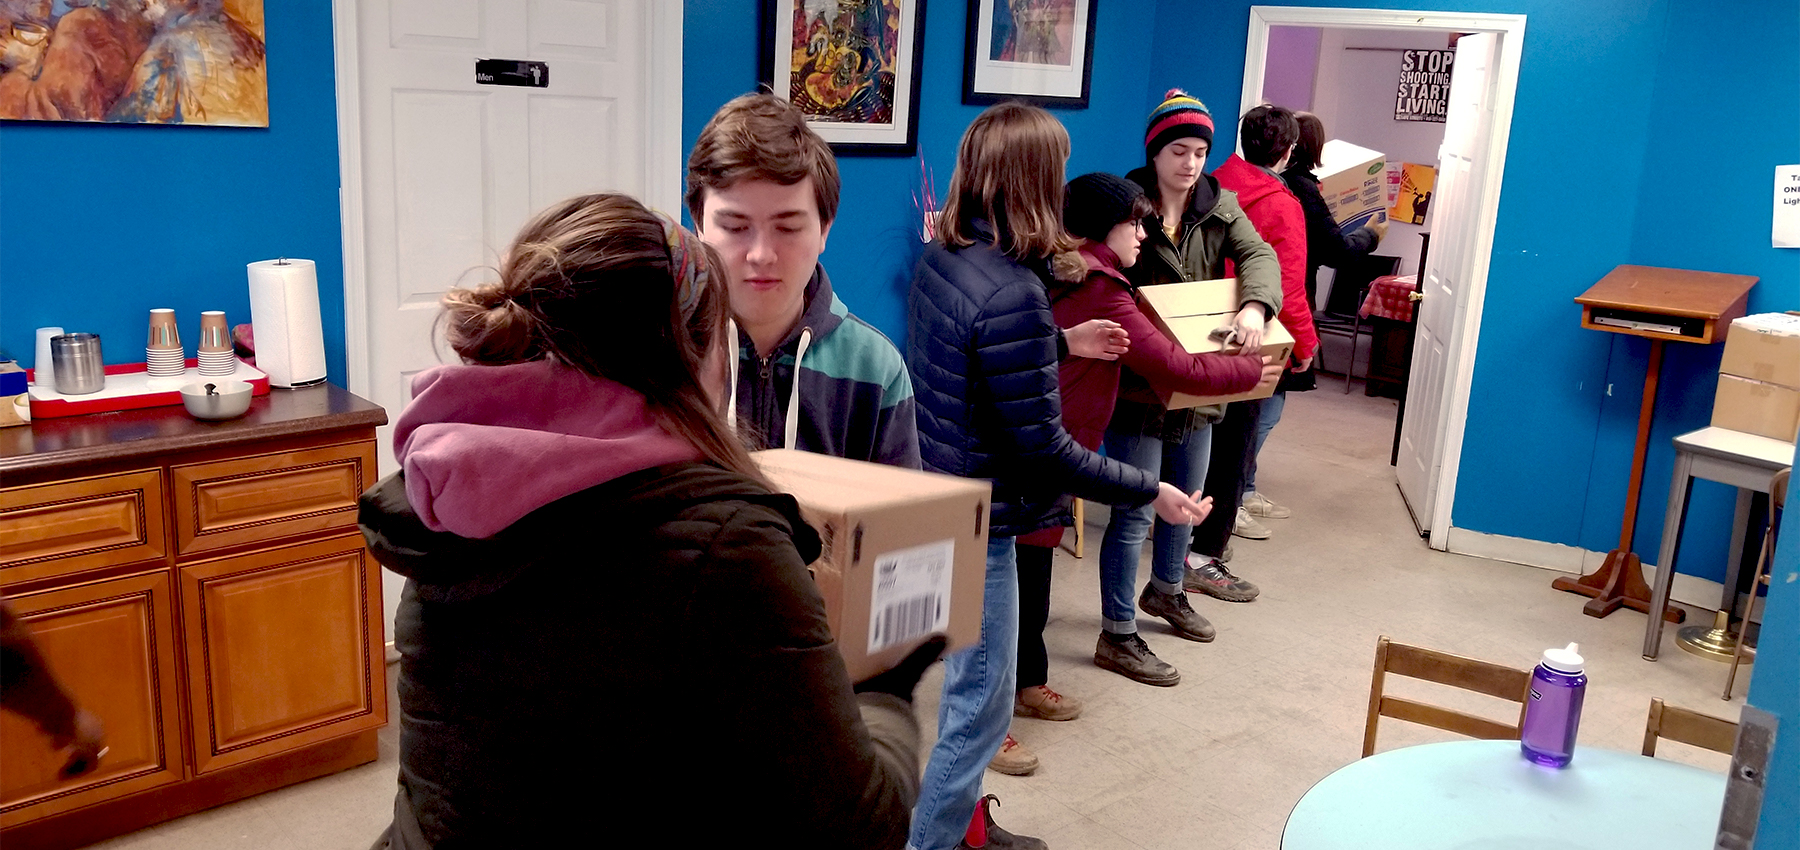 Youth from State College Presbyterian Church move boxes of food at Amazing Grace Lutheran Church in Baltimore earlier this year as part of the Hands and Feet initiative. Photo provided.